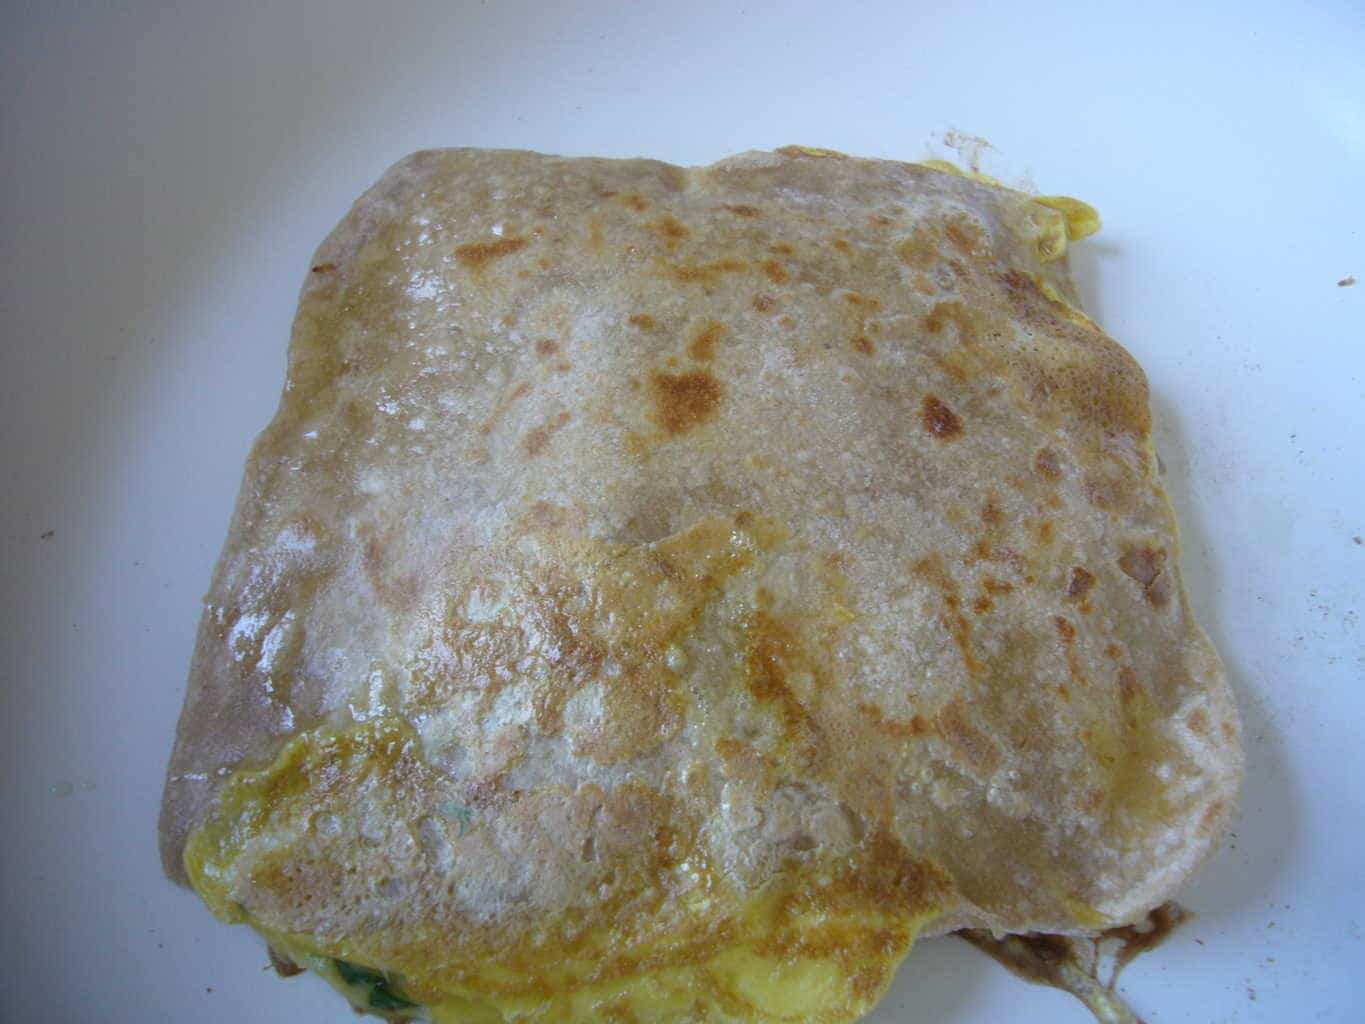 The omelette paratha after it has been cooked on both sides.